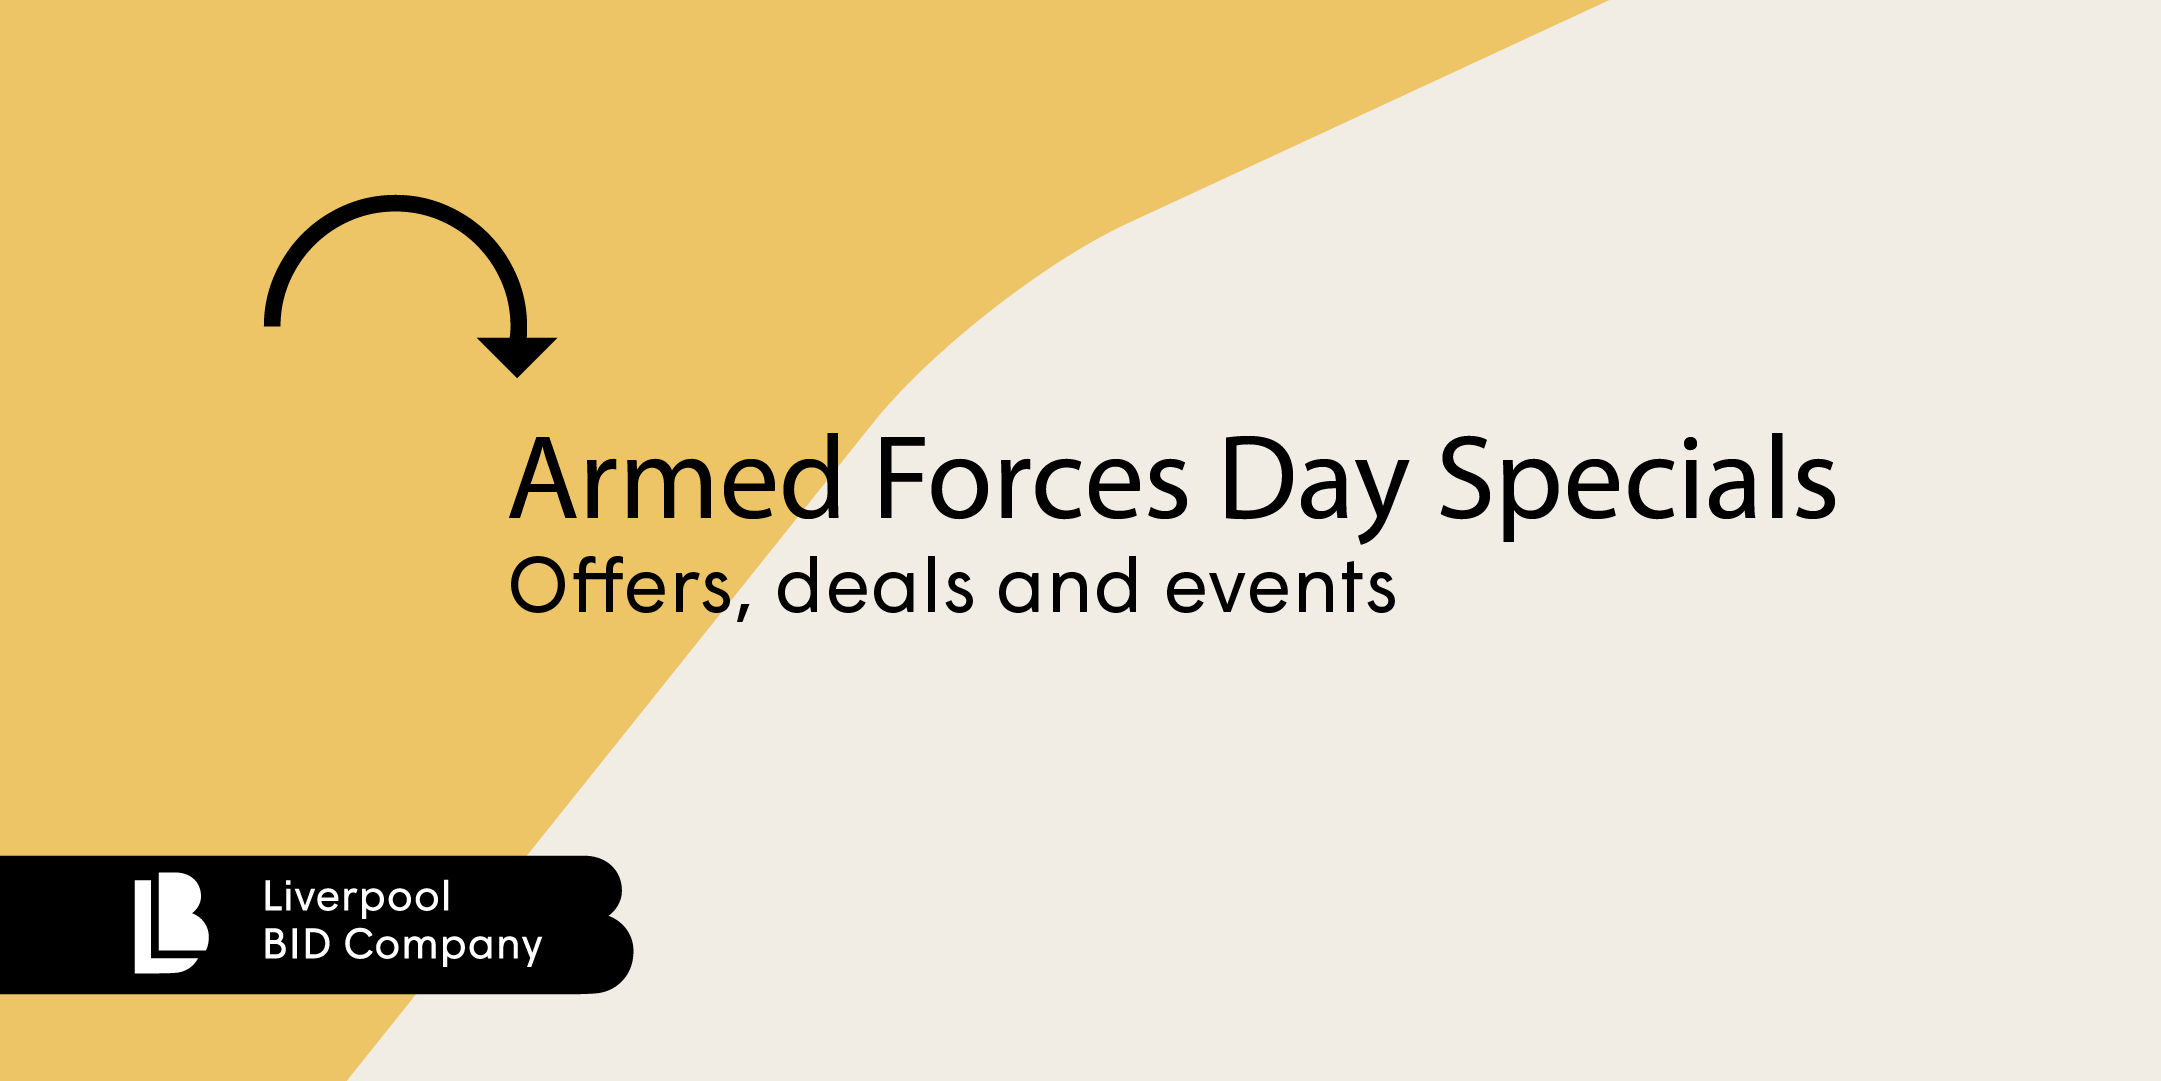 Armed Forces Day Specials